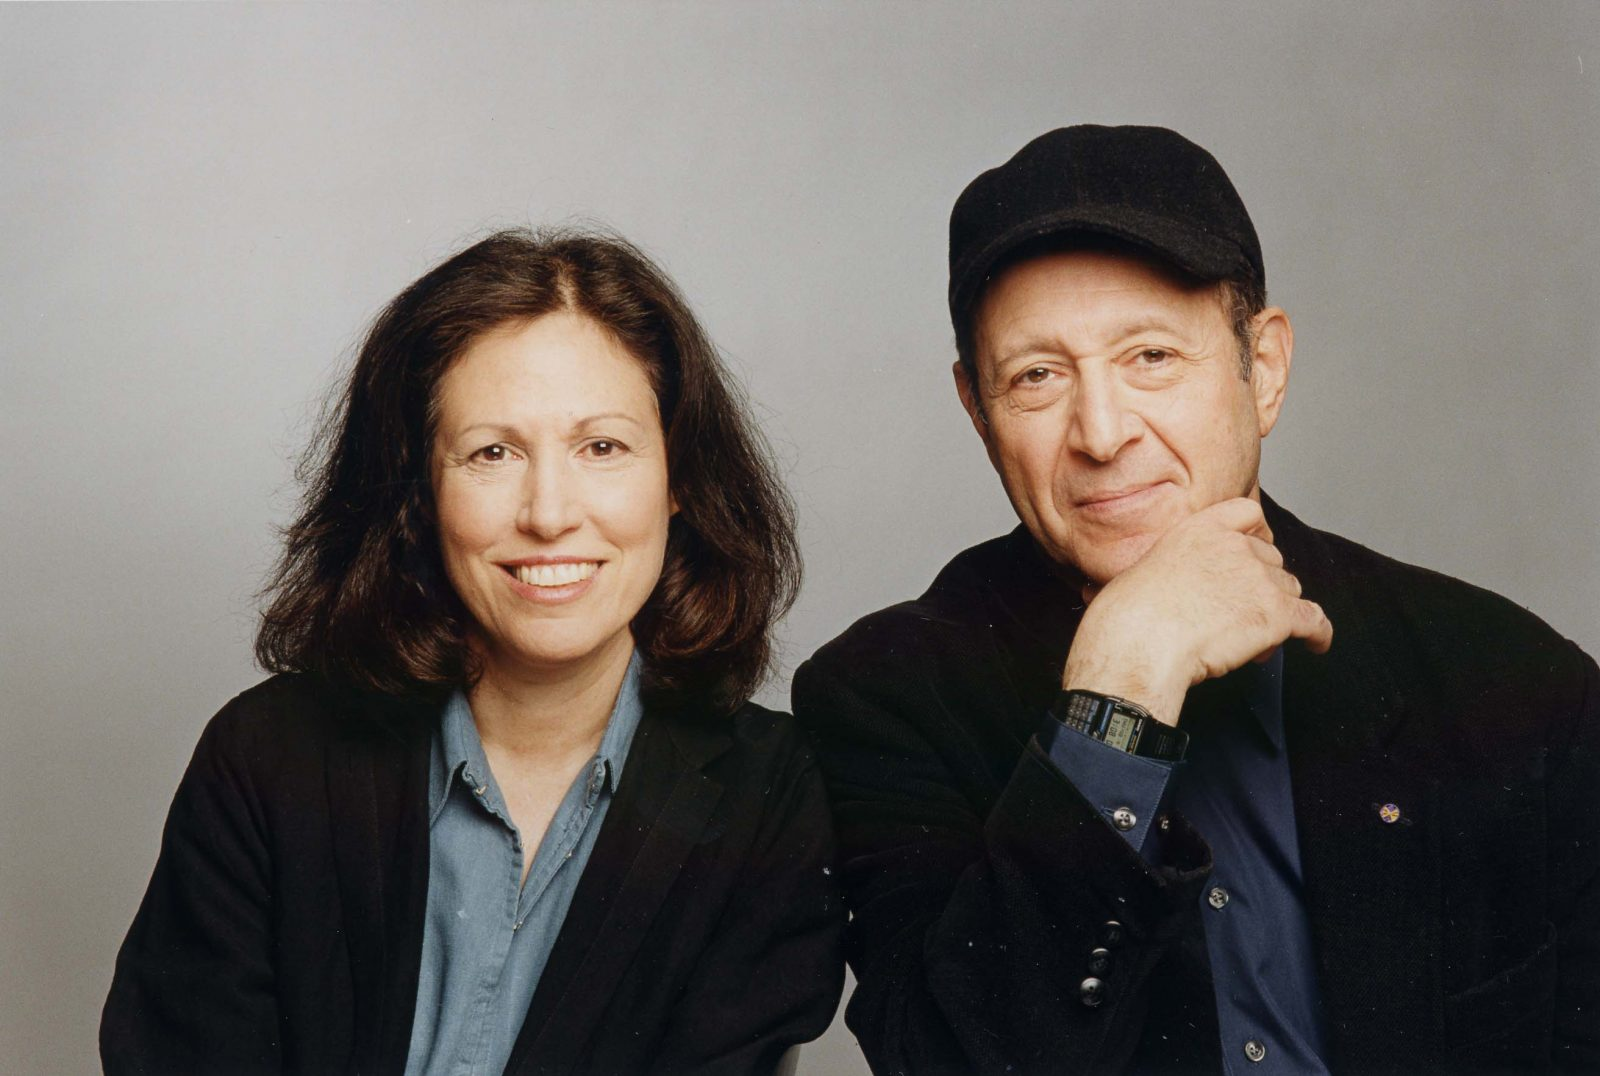 Steve Reich, here with his wife, Beryl Korot